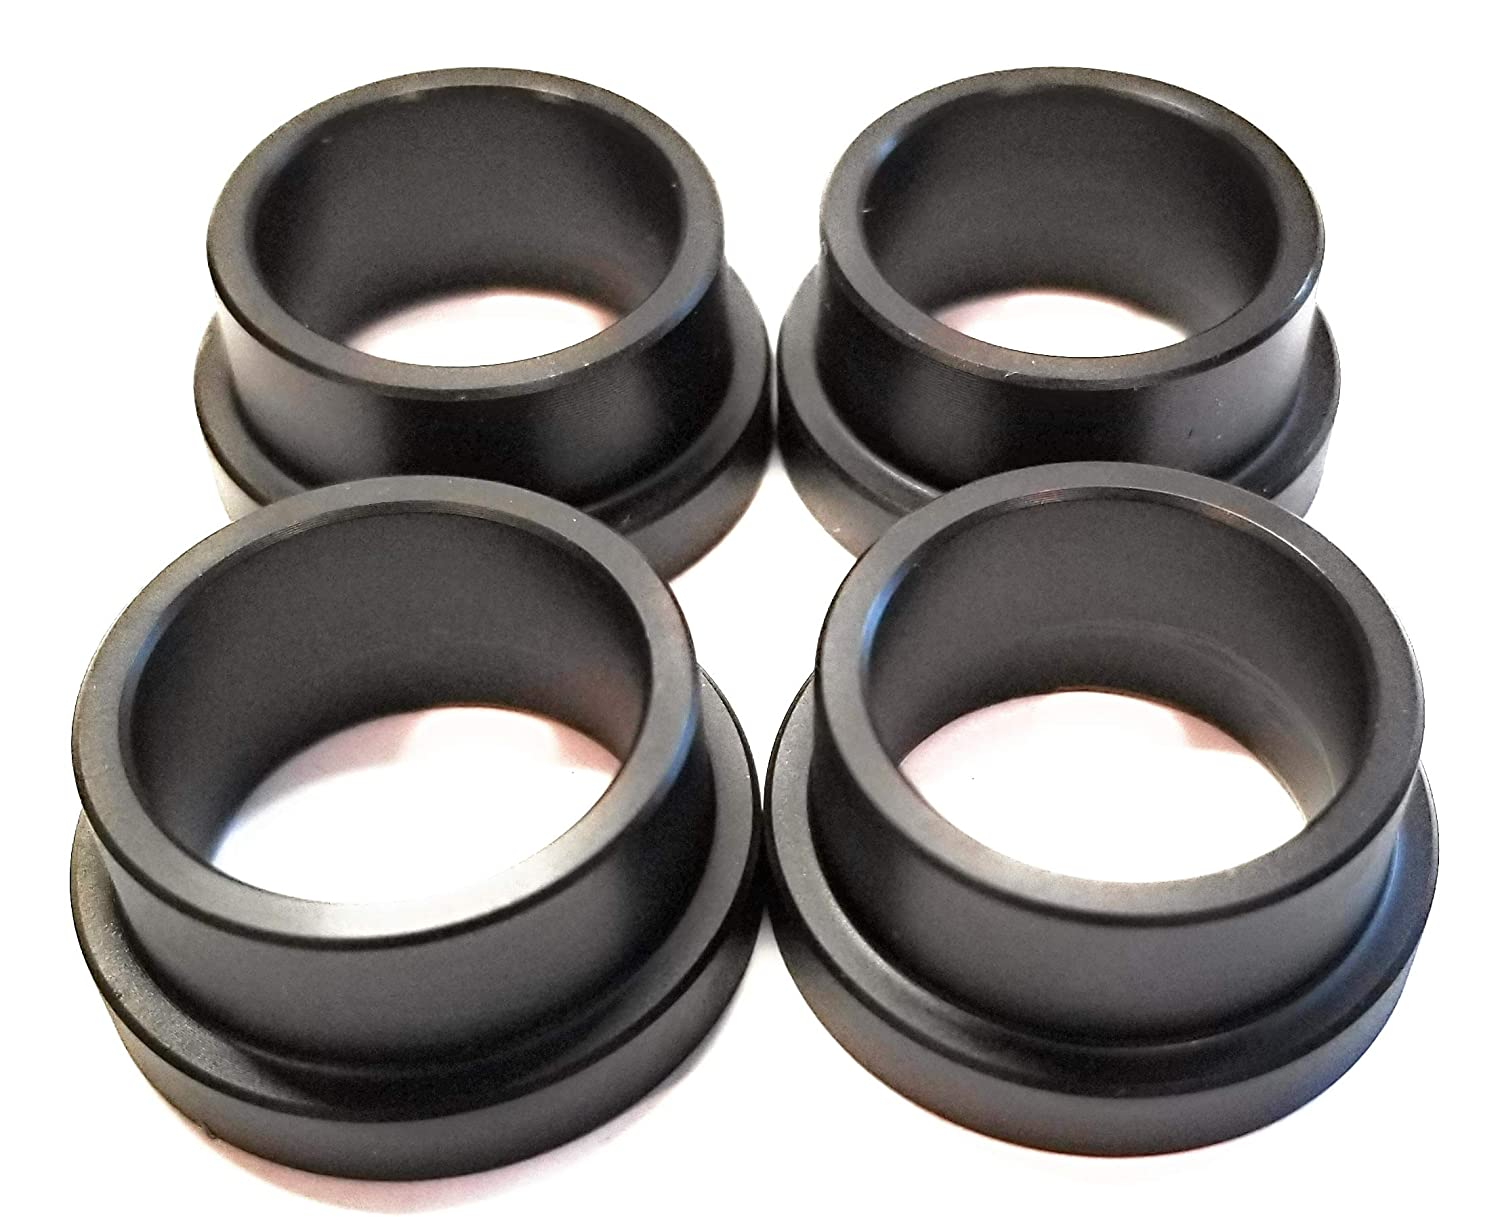 2005-2018 Polaris Delrin Shock Bushings Fusion IQ Dragon Switchback Indy replaces 1500609